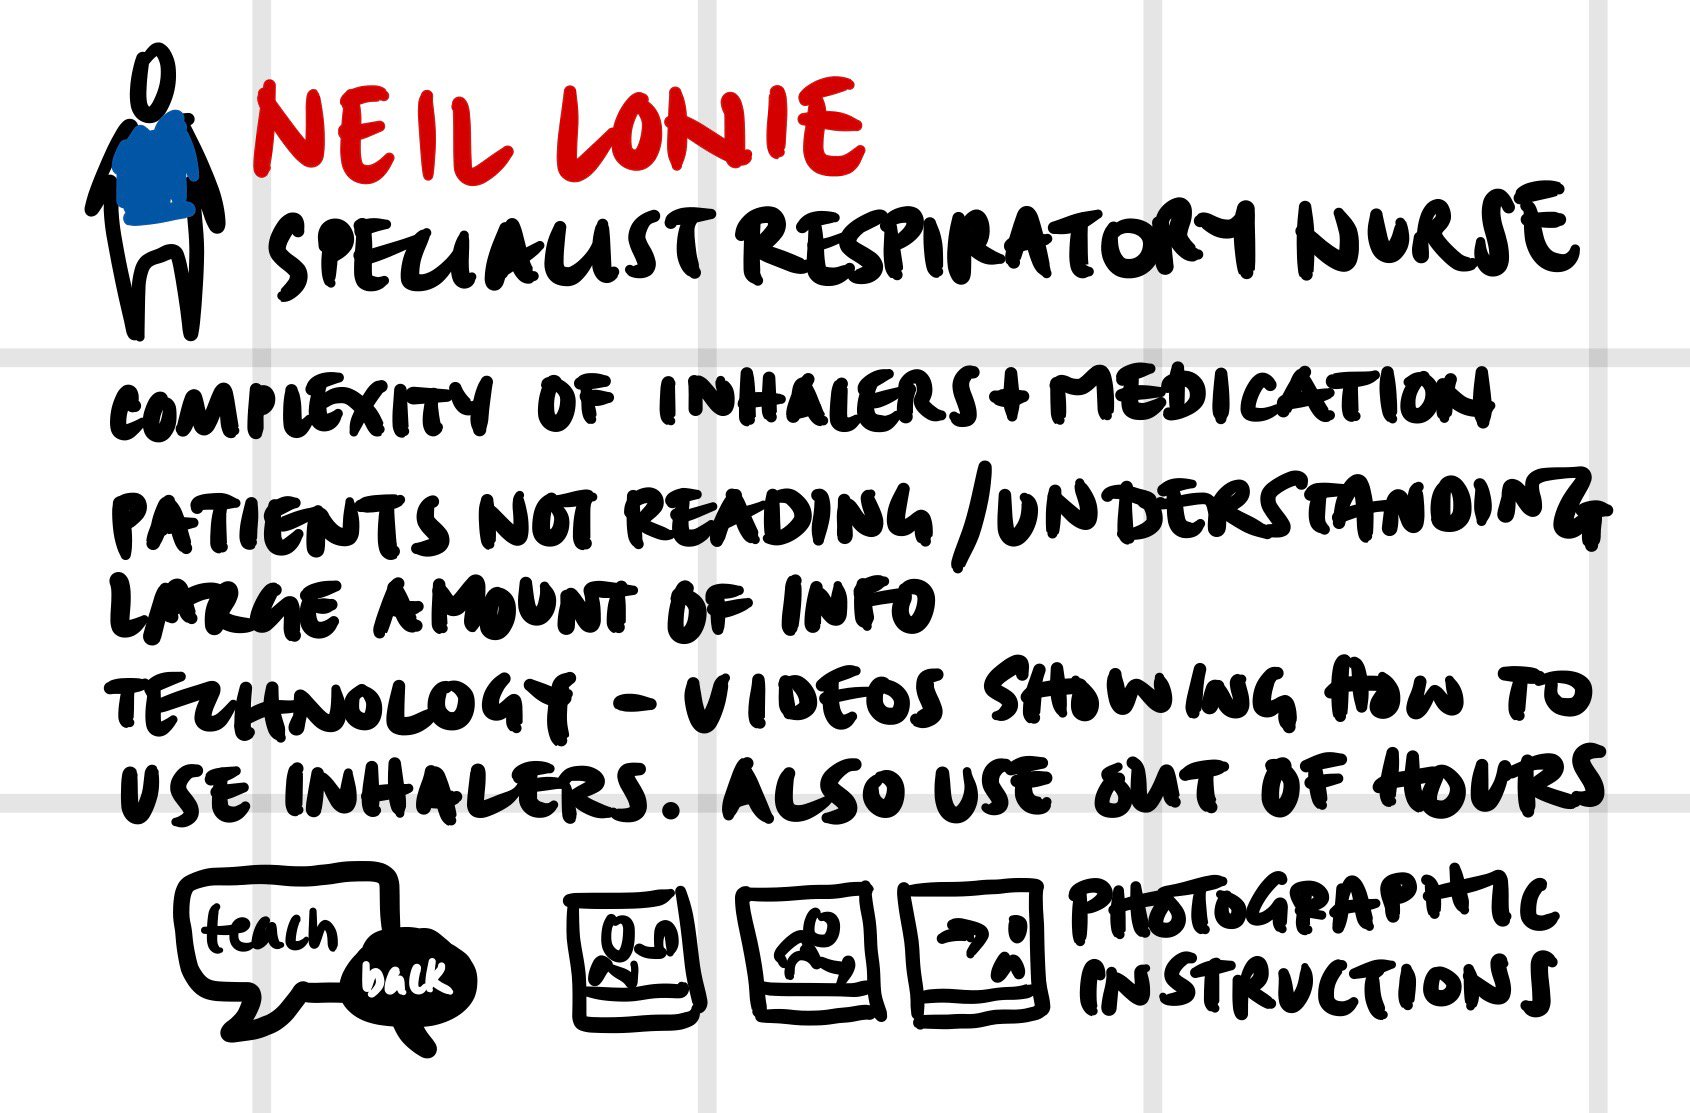 Neil Lonie teach back, videos and photos to help patients manage complexity in conditions, medication and information #healthlitdiscovery https://t.co/XmH8kew4tP